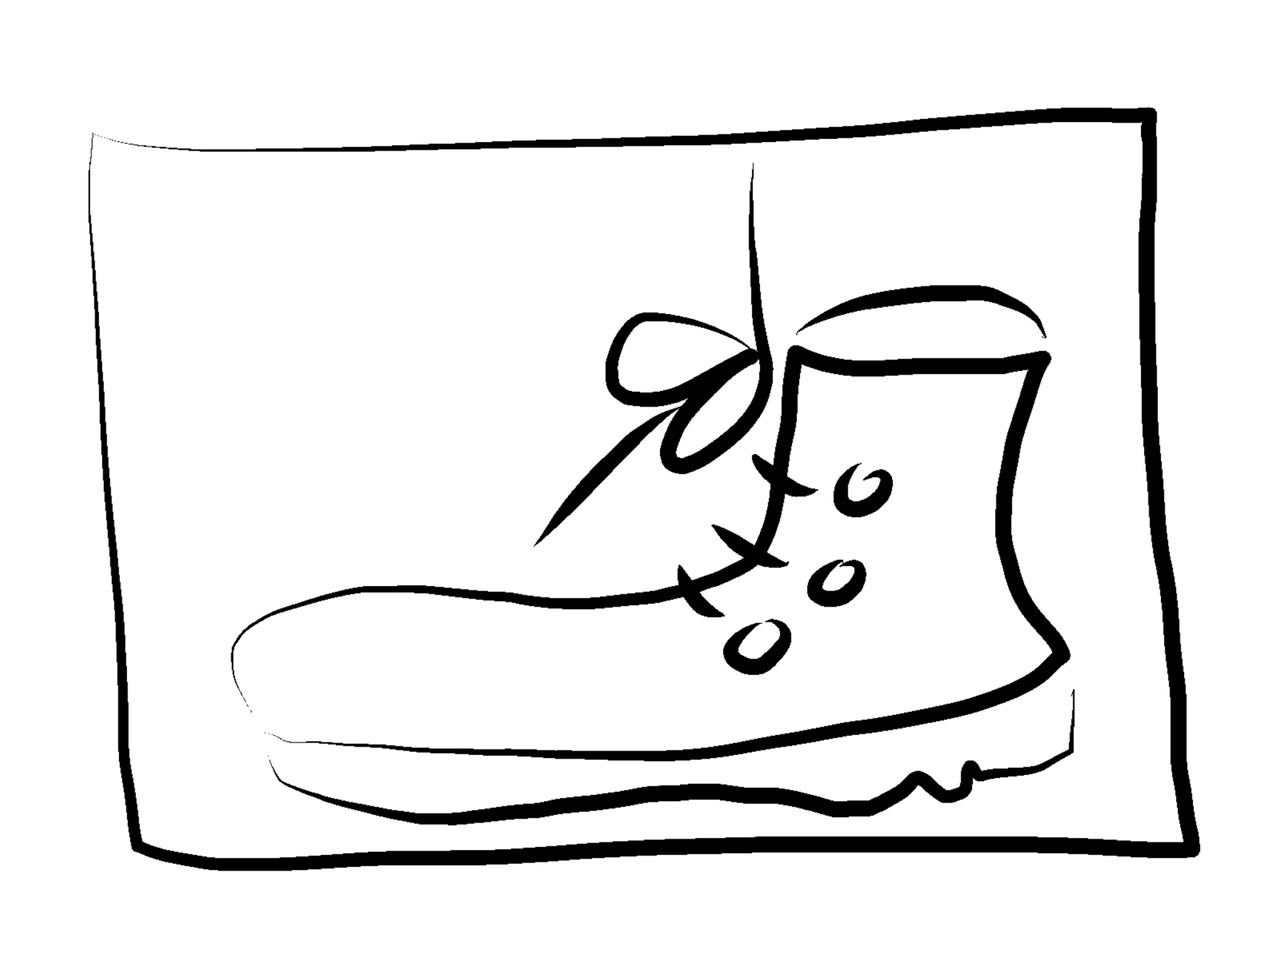 Pedule / Boots